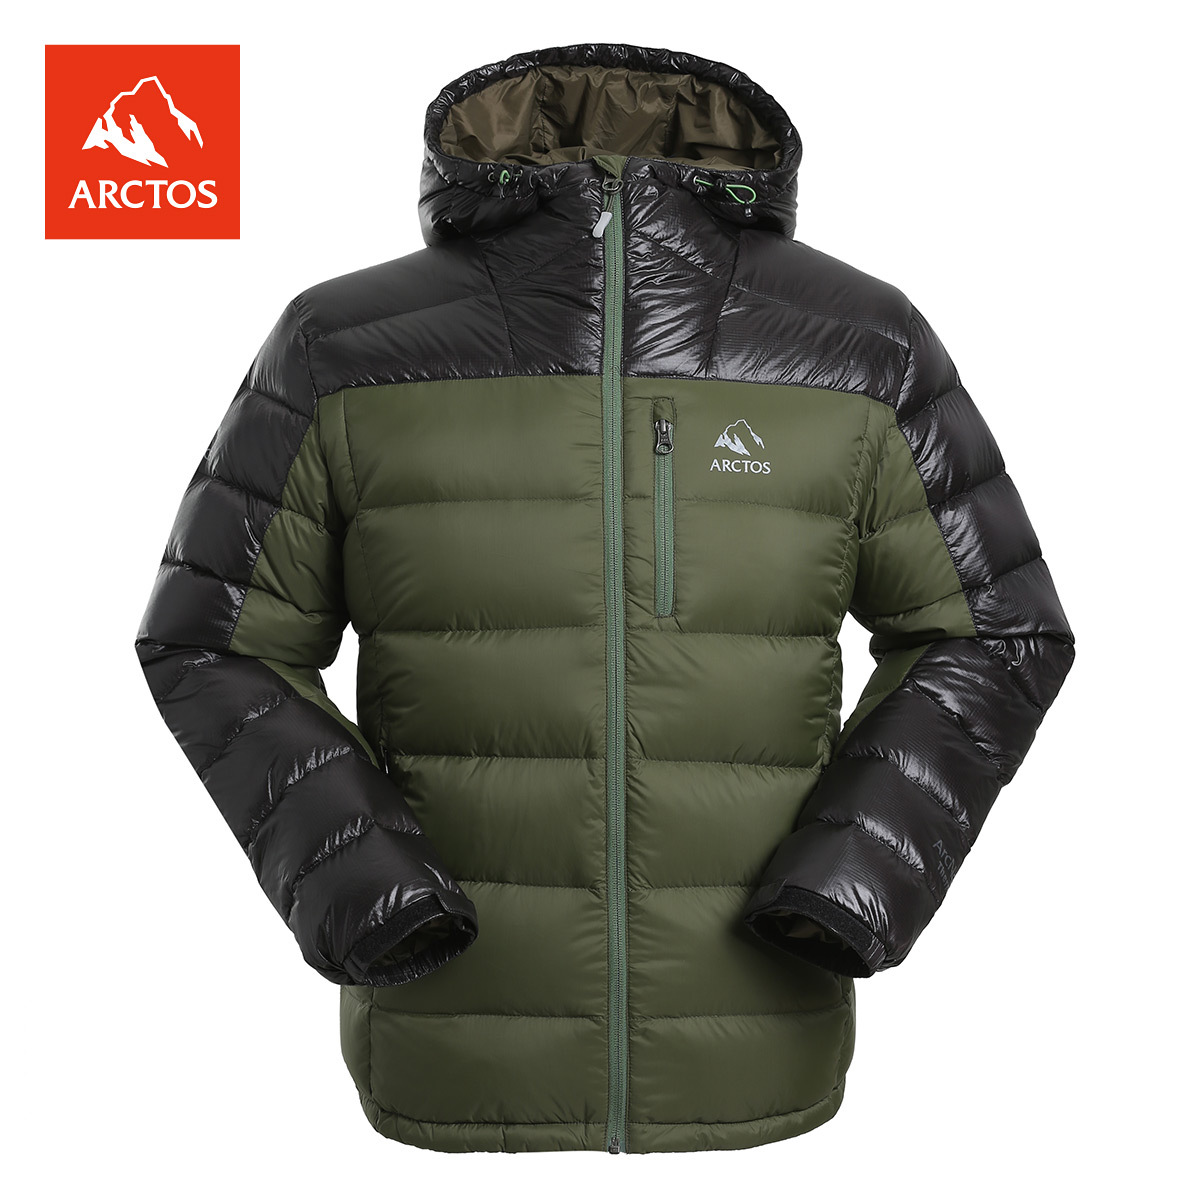 Extreme star outdoor men and women down jacket Super warm thick coat jacket 210 g down jacket Anti-season specials authentic